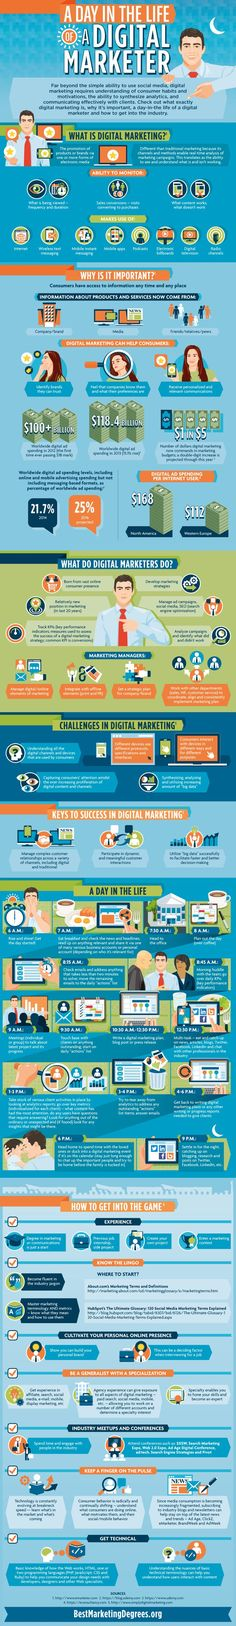 A Day in the Life of a Digital Marketer Infographic